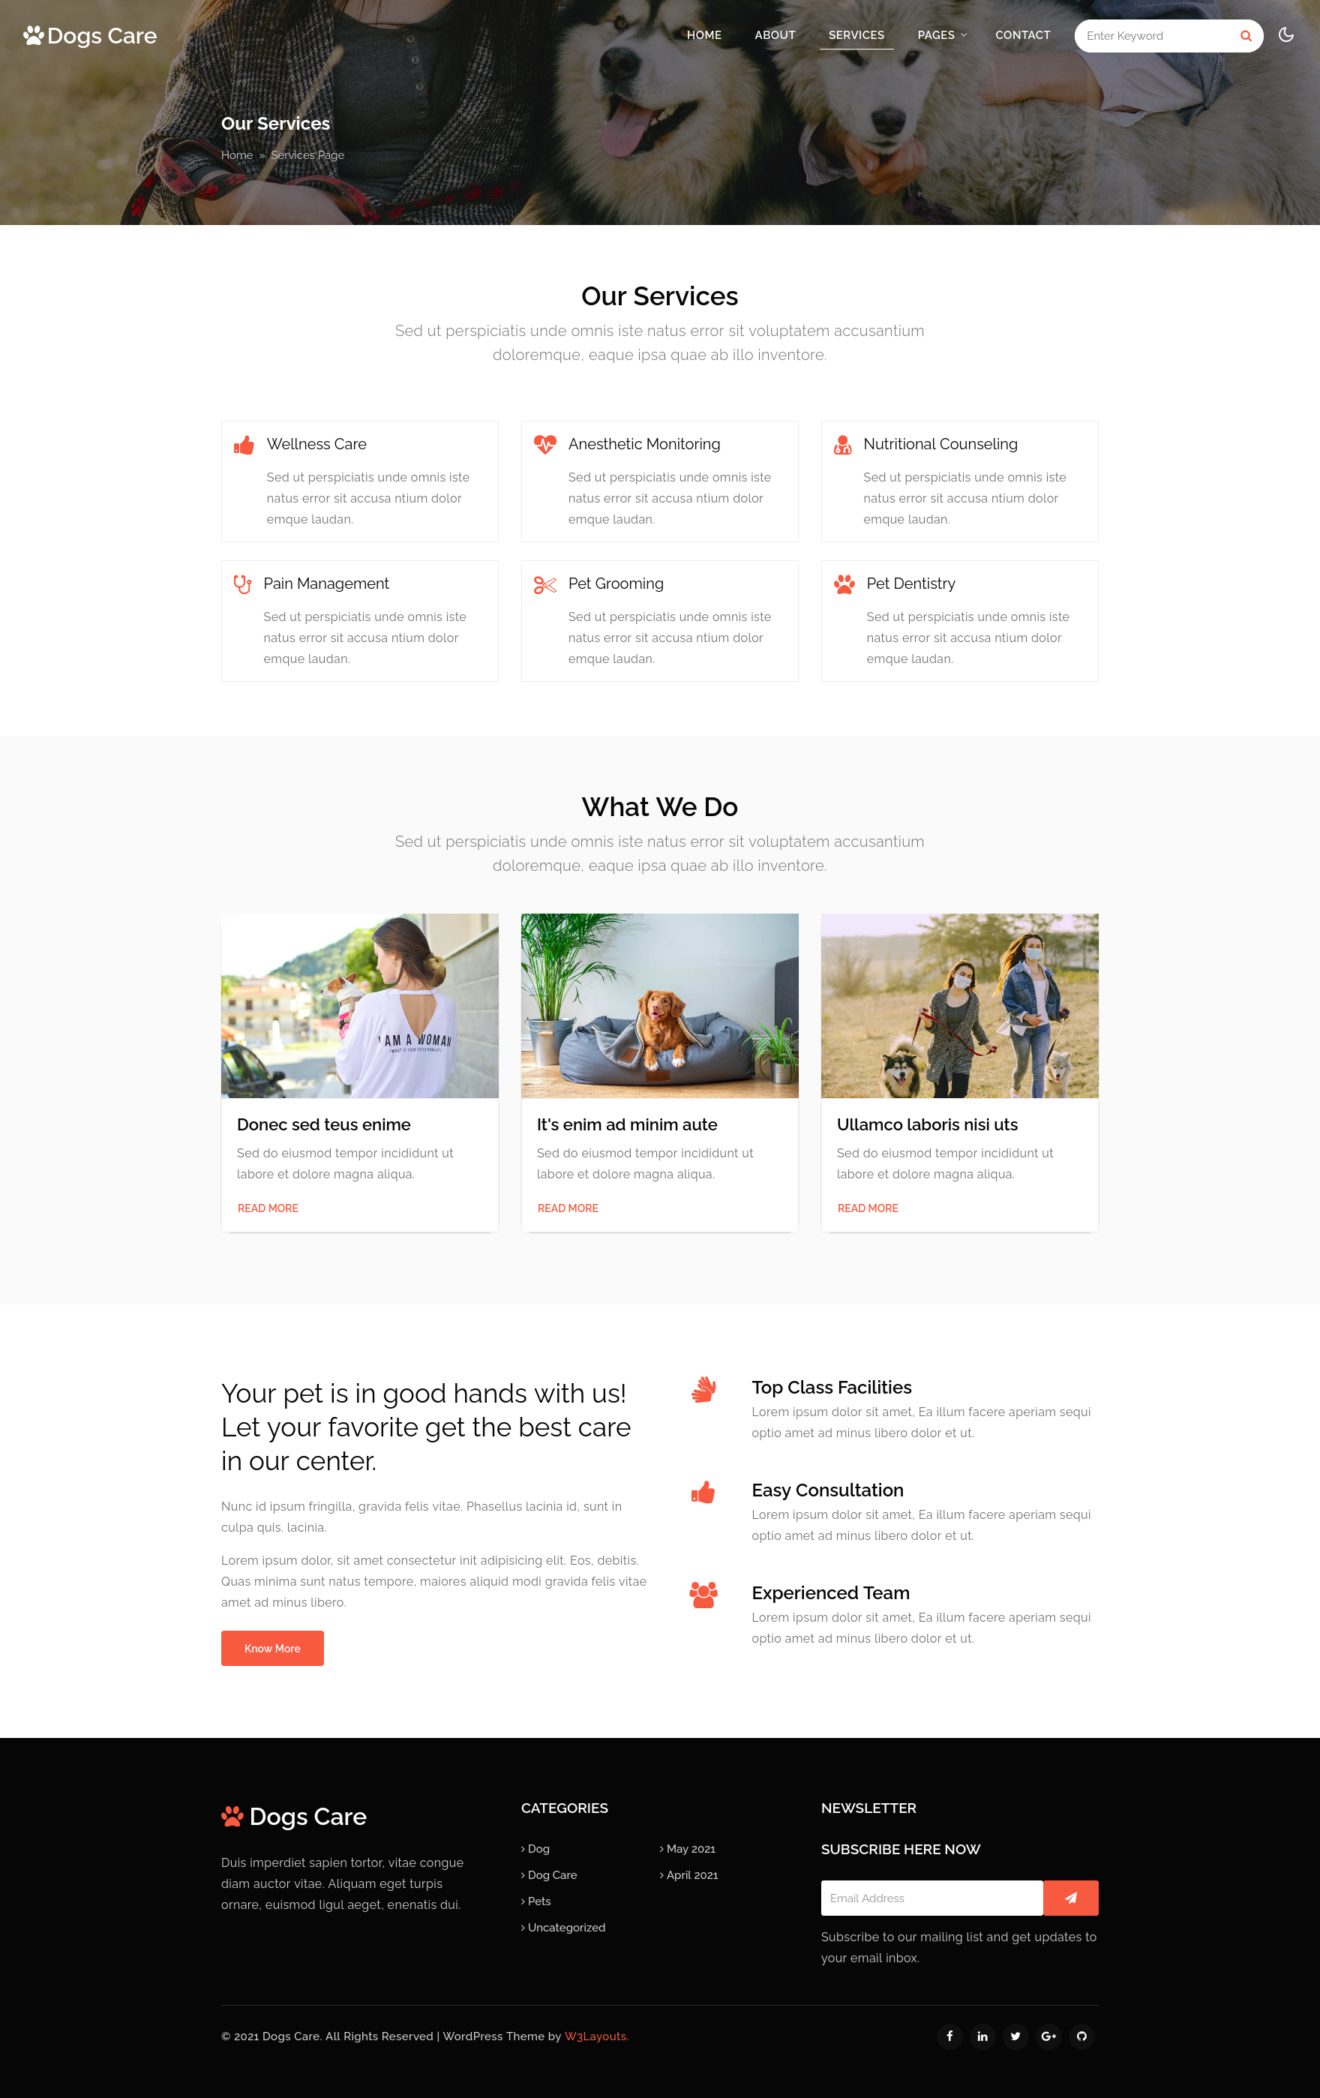 dogs care a pet care website template's about page